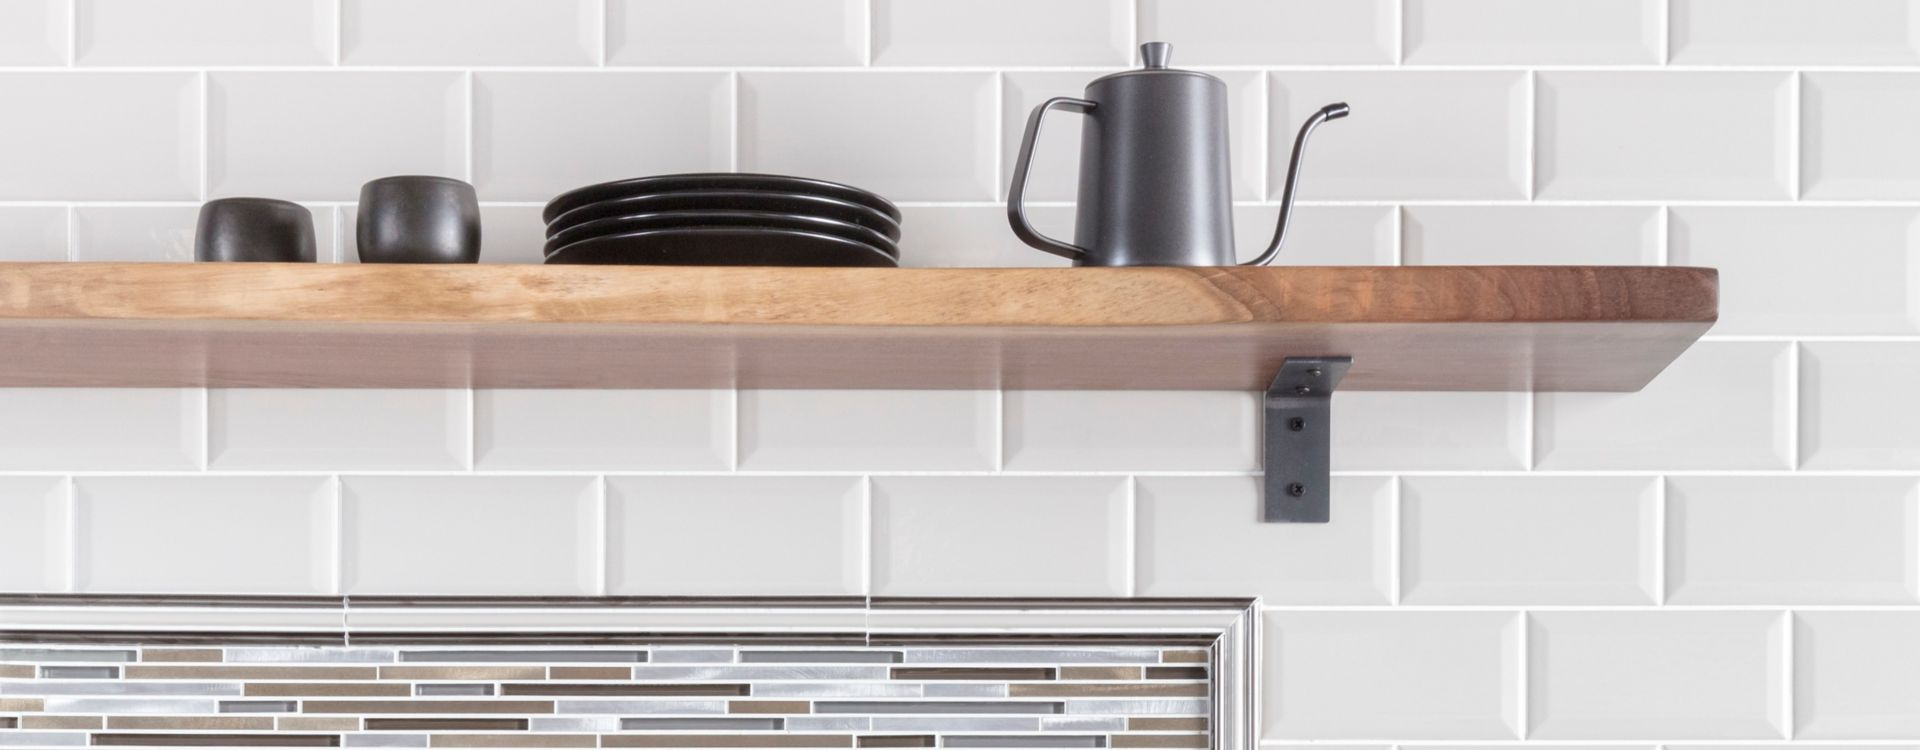 Coffee bar in kitchen with white bevel-edge subway tile and metallic stria accent tile as backsplash.